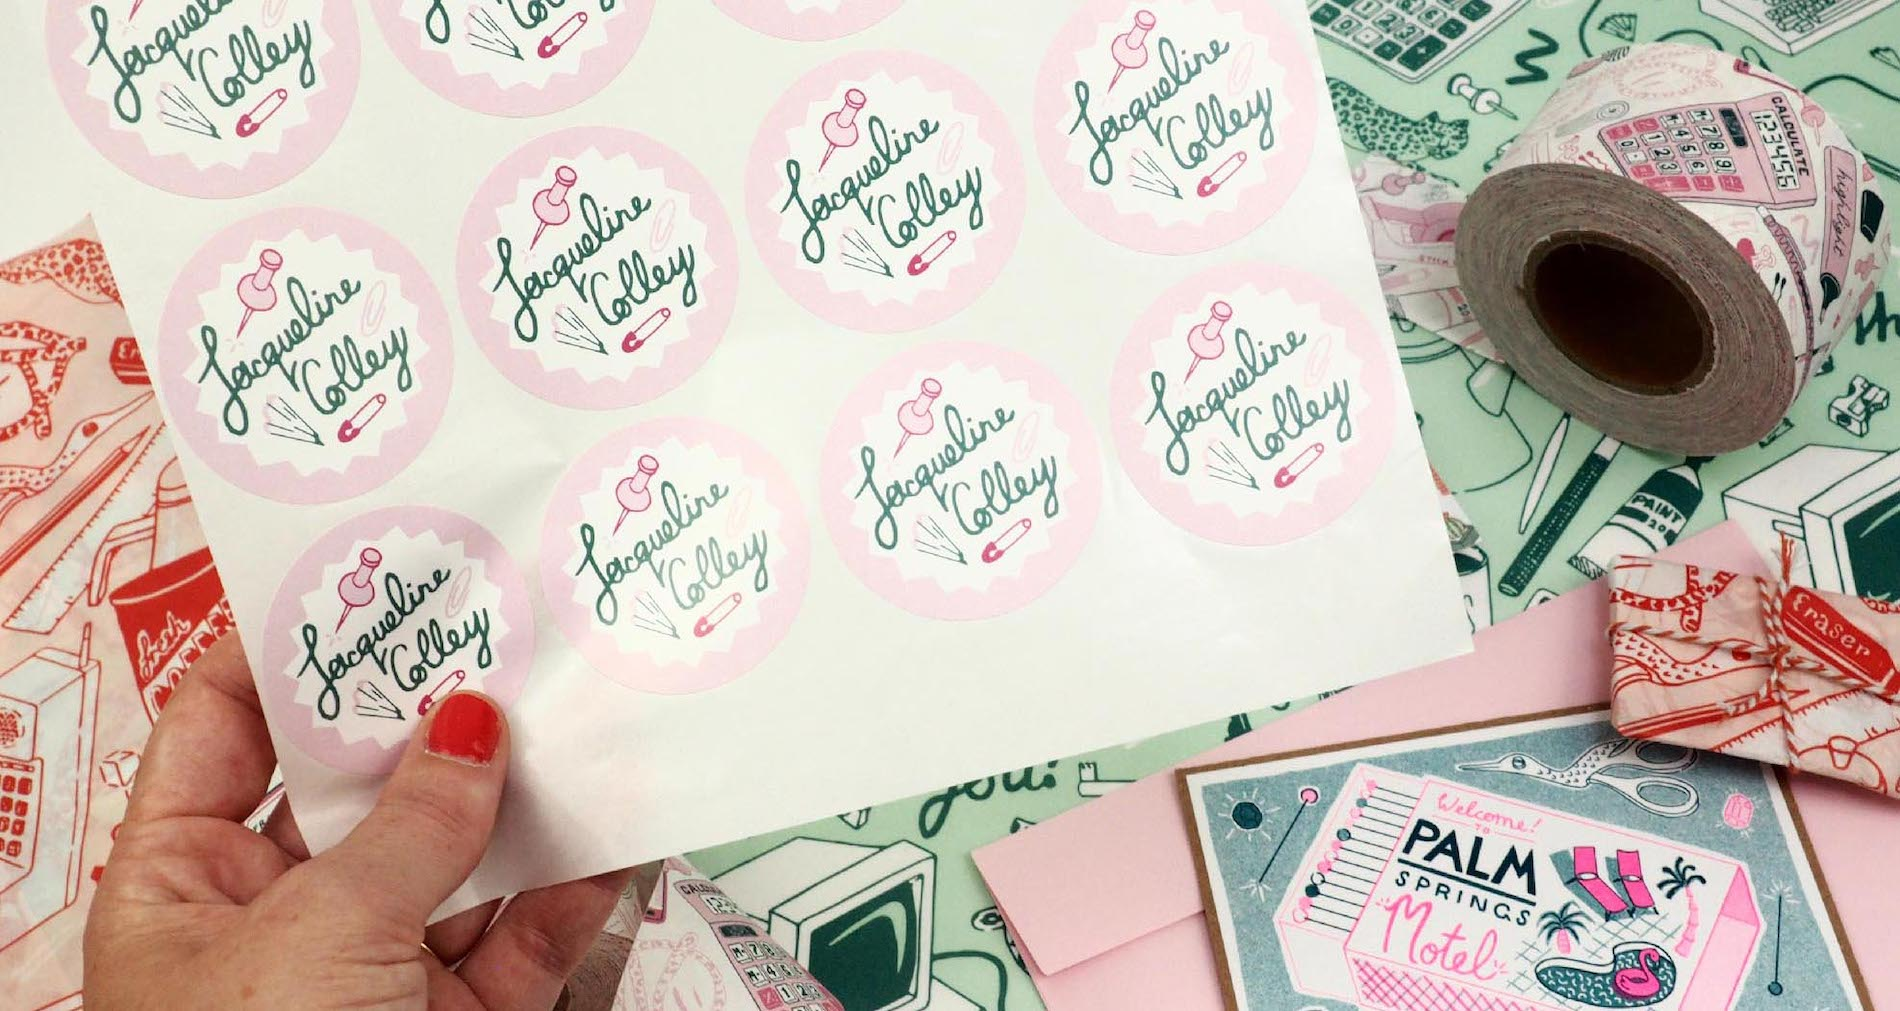 Custom stickers designed by Jacqueline Colley